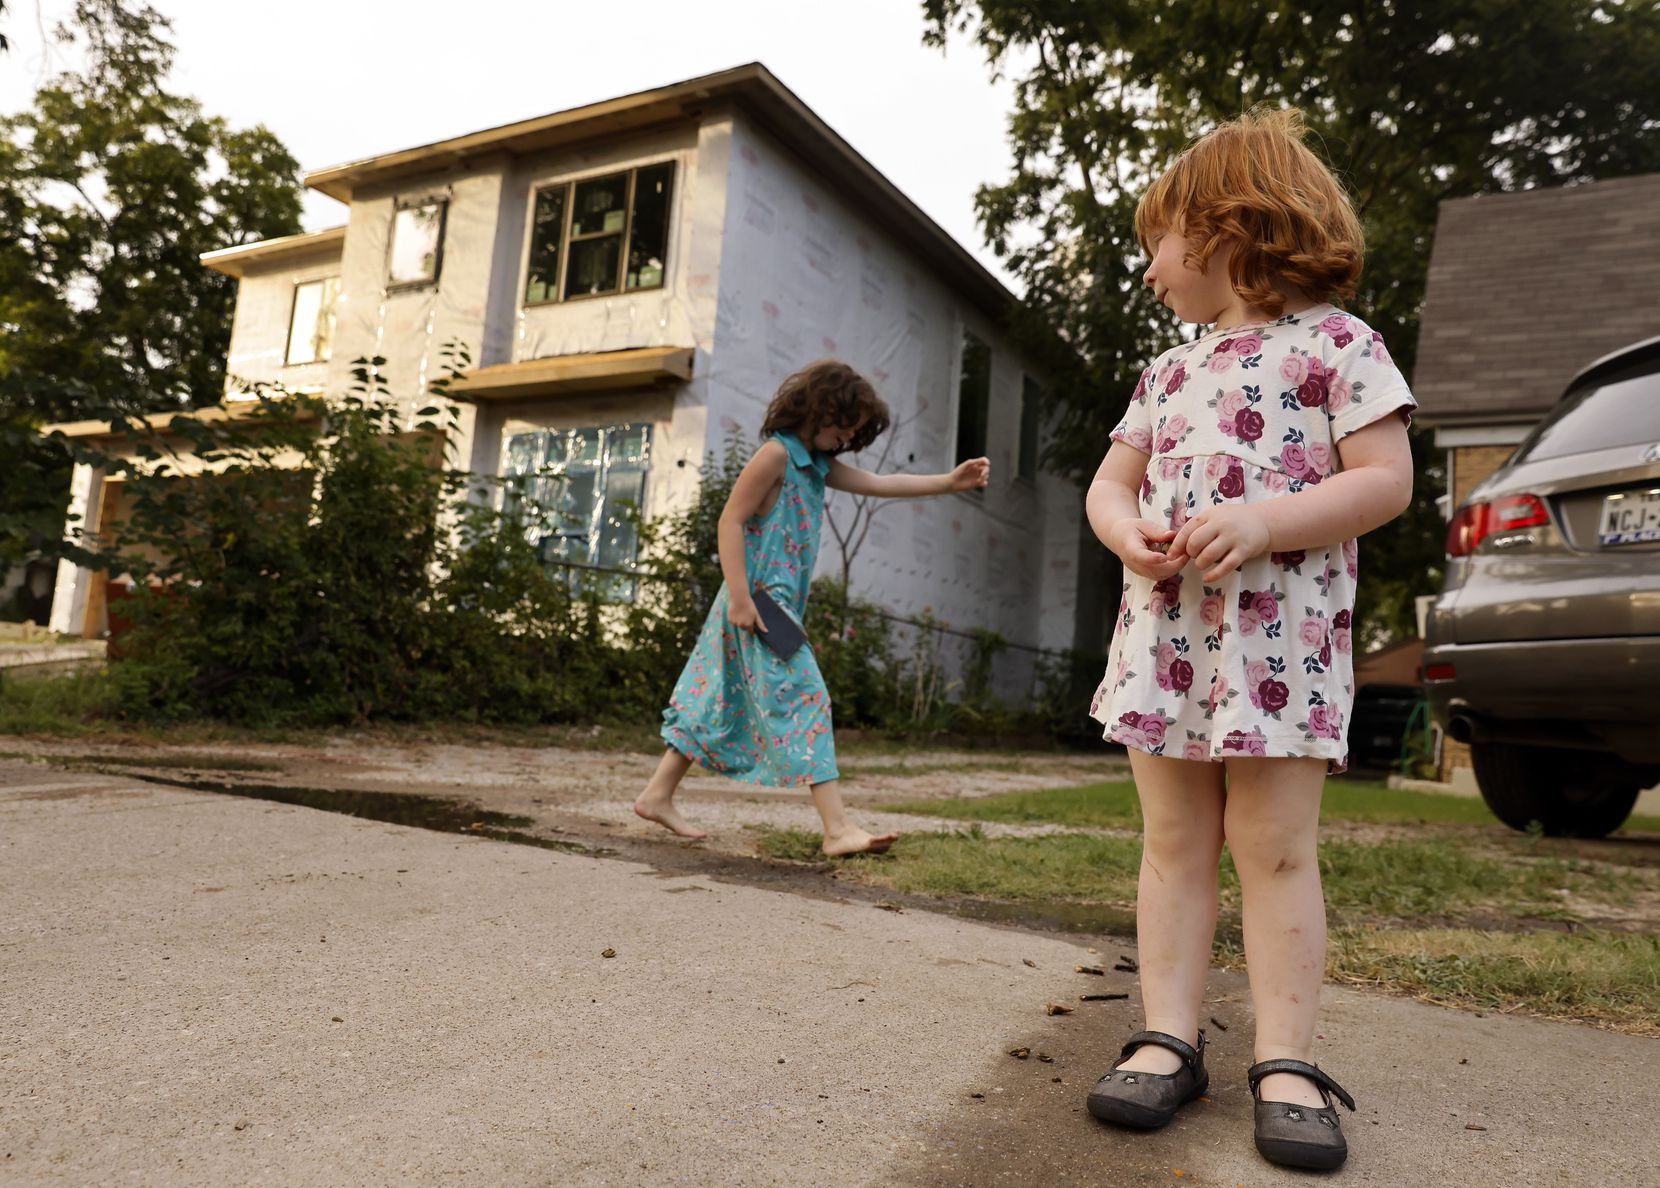 Opal Benjamin, 2, watches as her sister Ivy, 6, plays in their front yard next door to a large modern home under construction on Cristler Avenue in the Mount Auburn neighborhood of East Dallas.